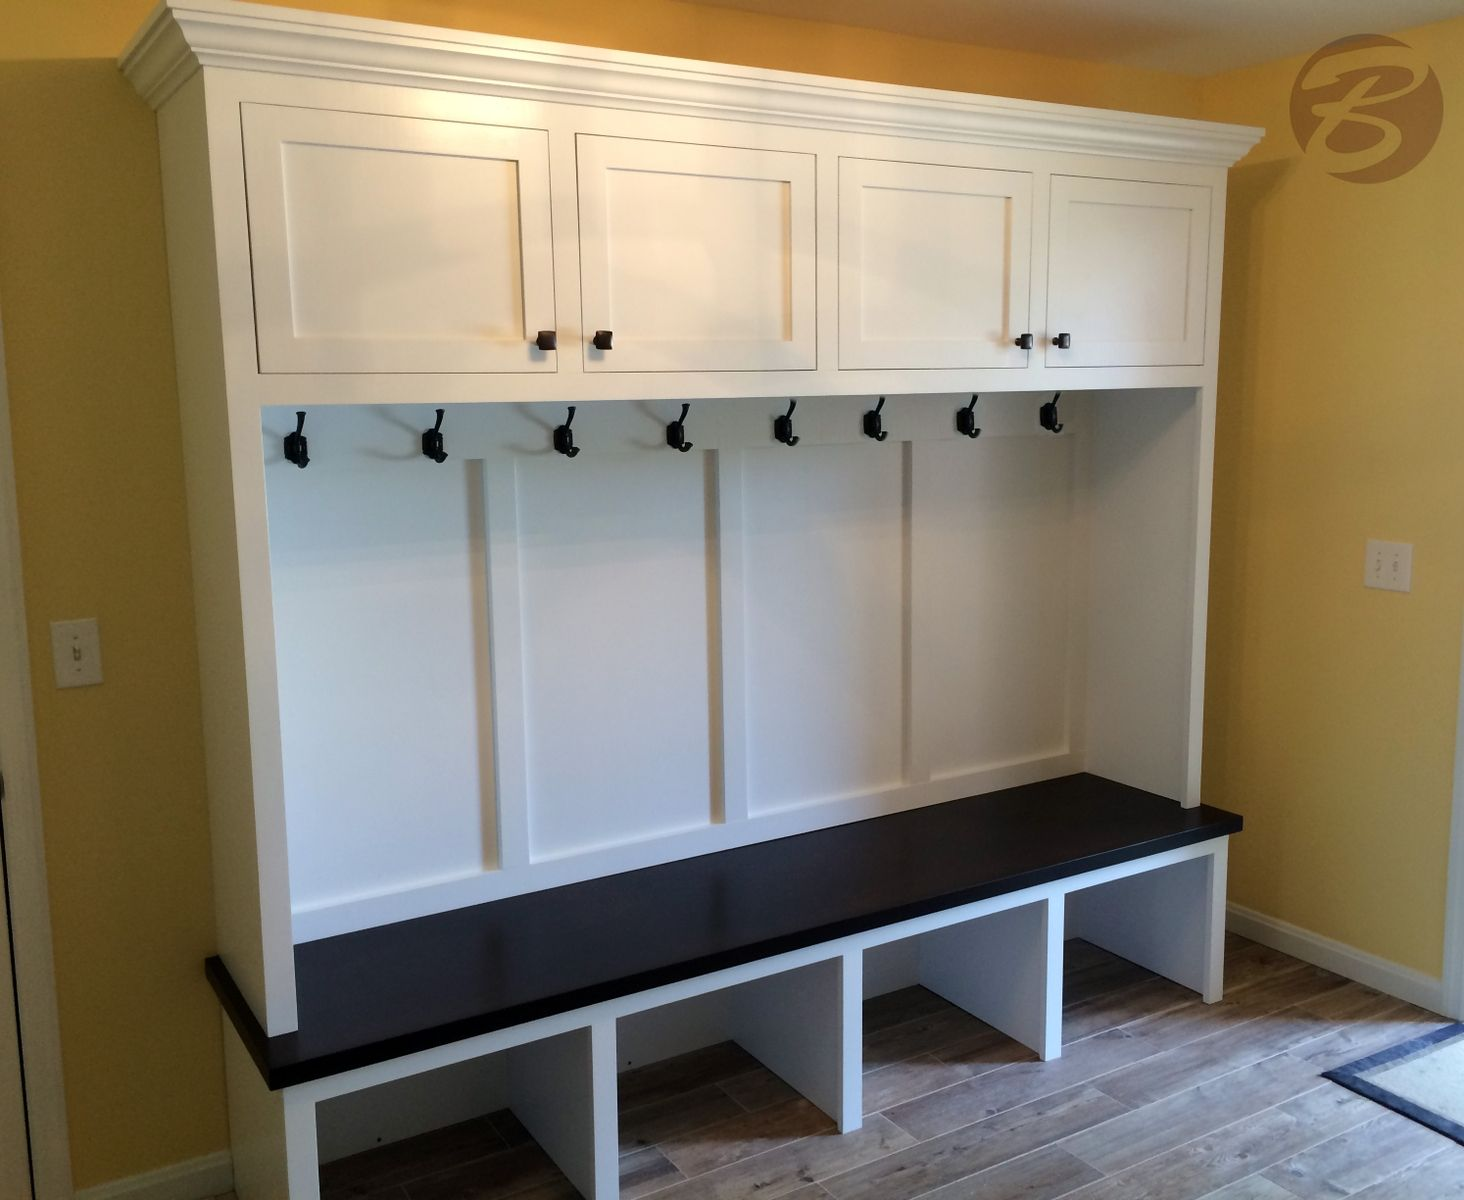 Handmade mudroom entryway bench and storage by Mud room benches